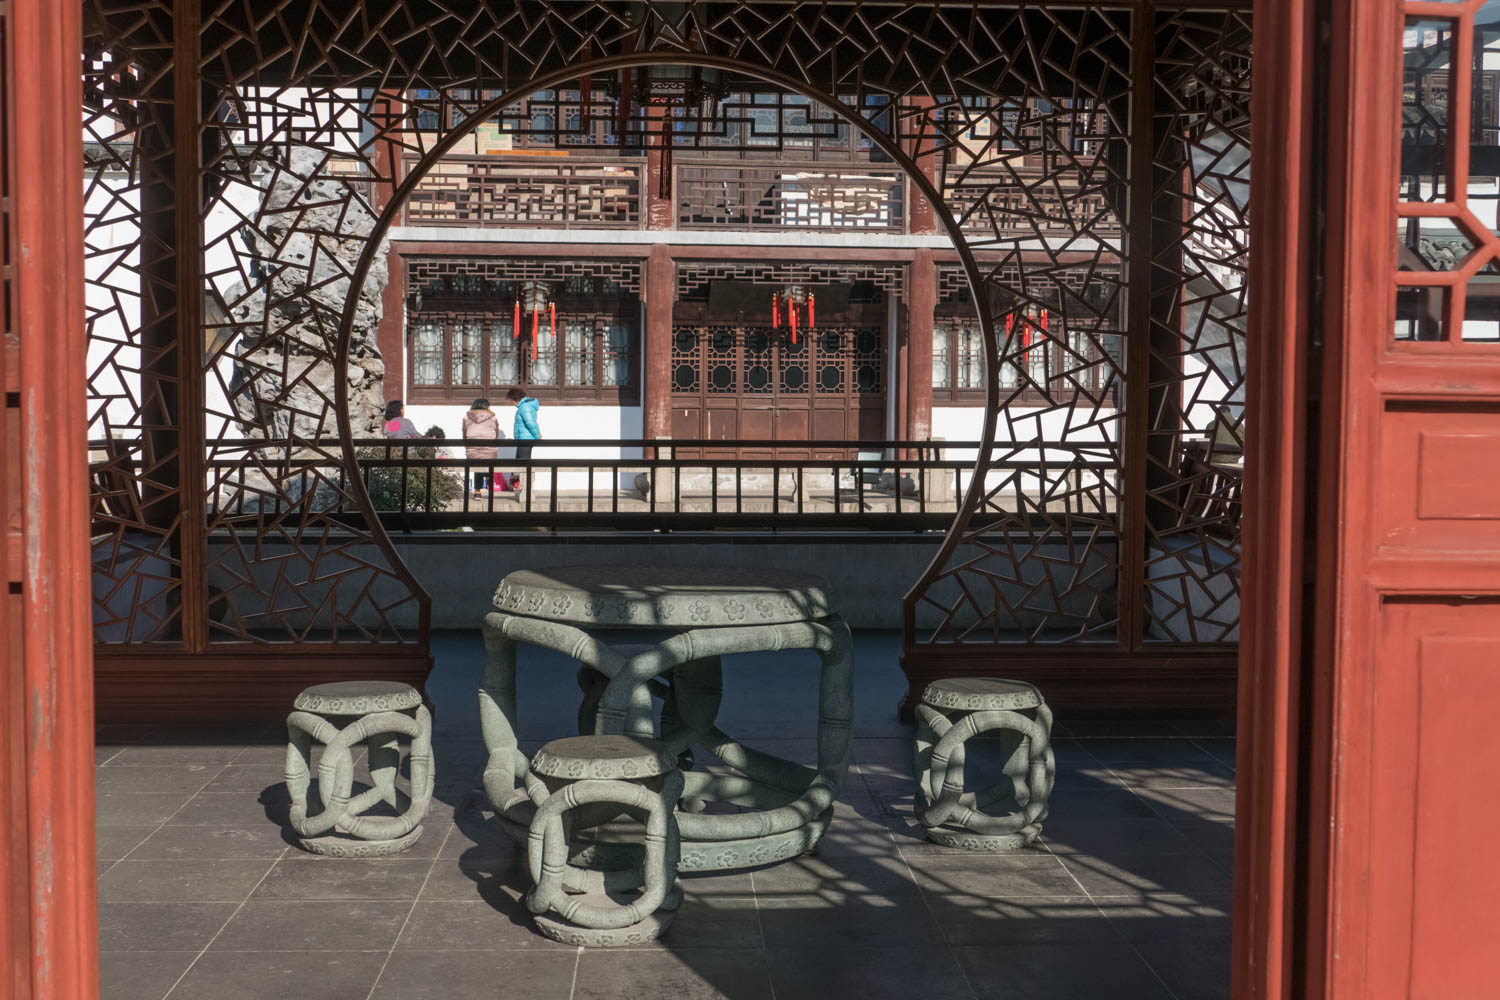 The Confucian Temple provides a quiet respite from the city